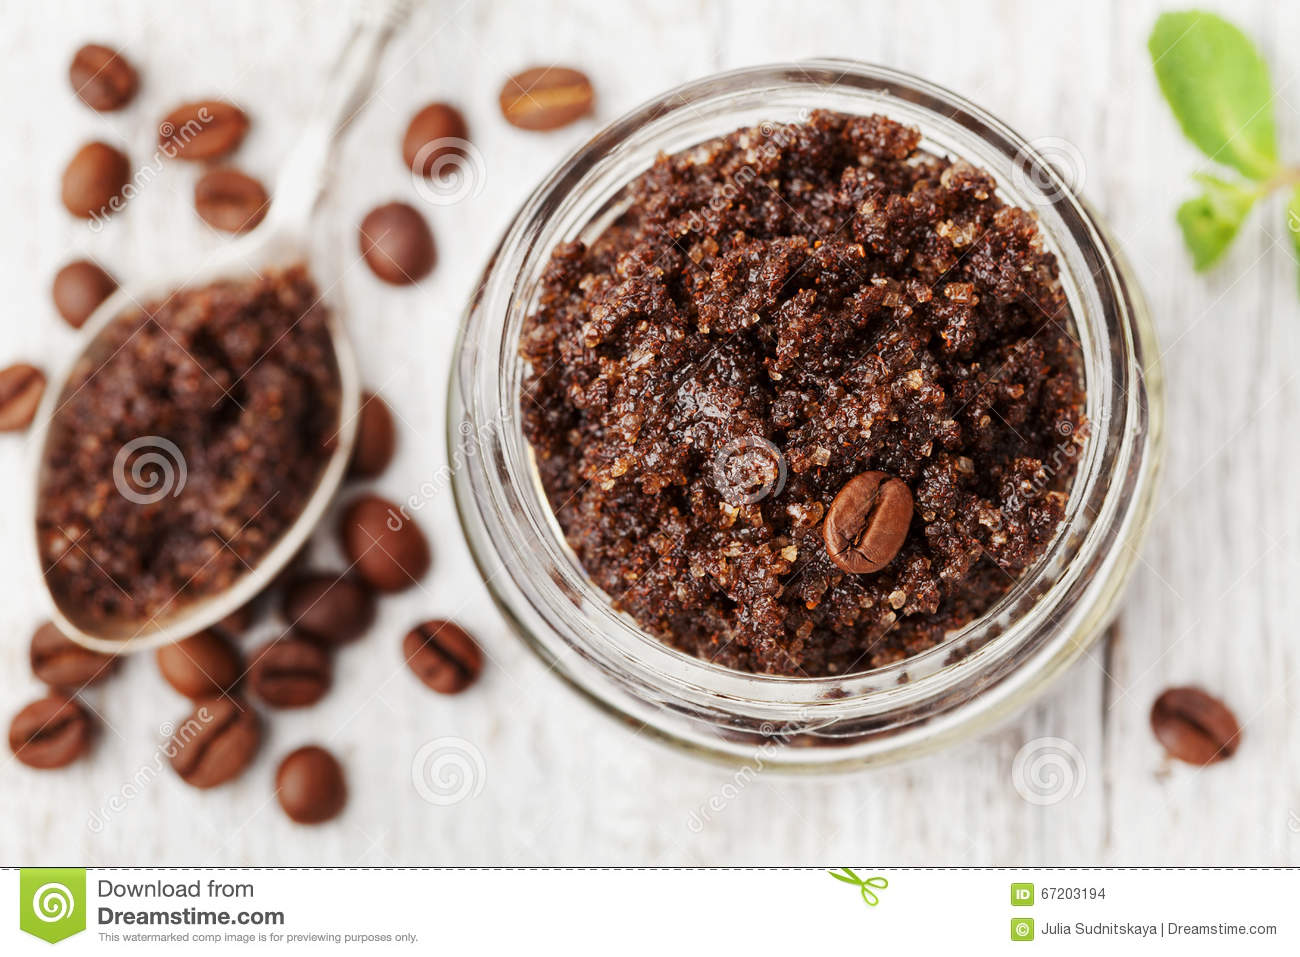 Body scrub of ground coffee, sugar and coconut oil in glass jar on white rustic table, homemade cosmetic for peeling and spa